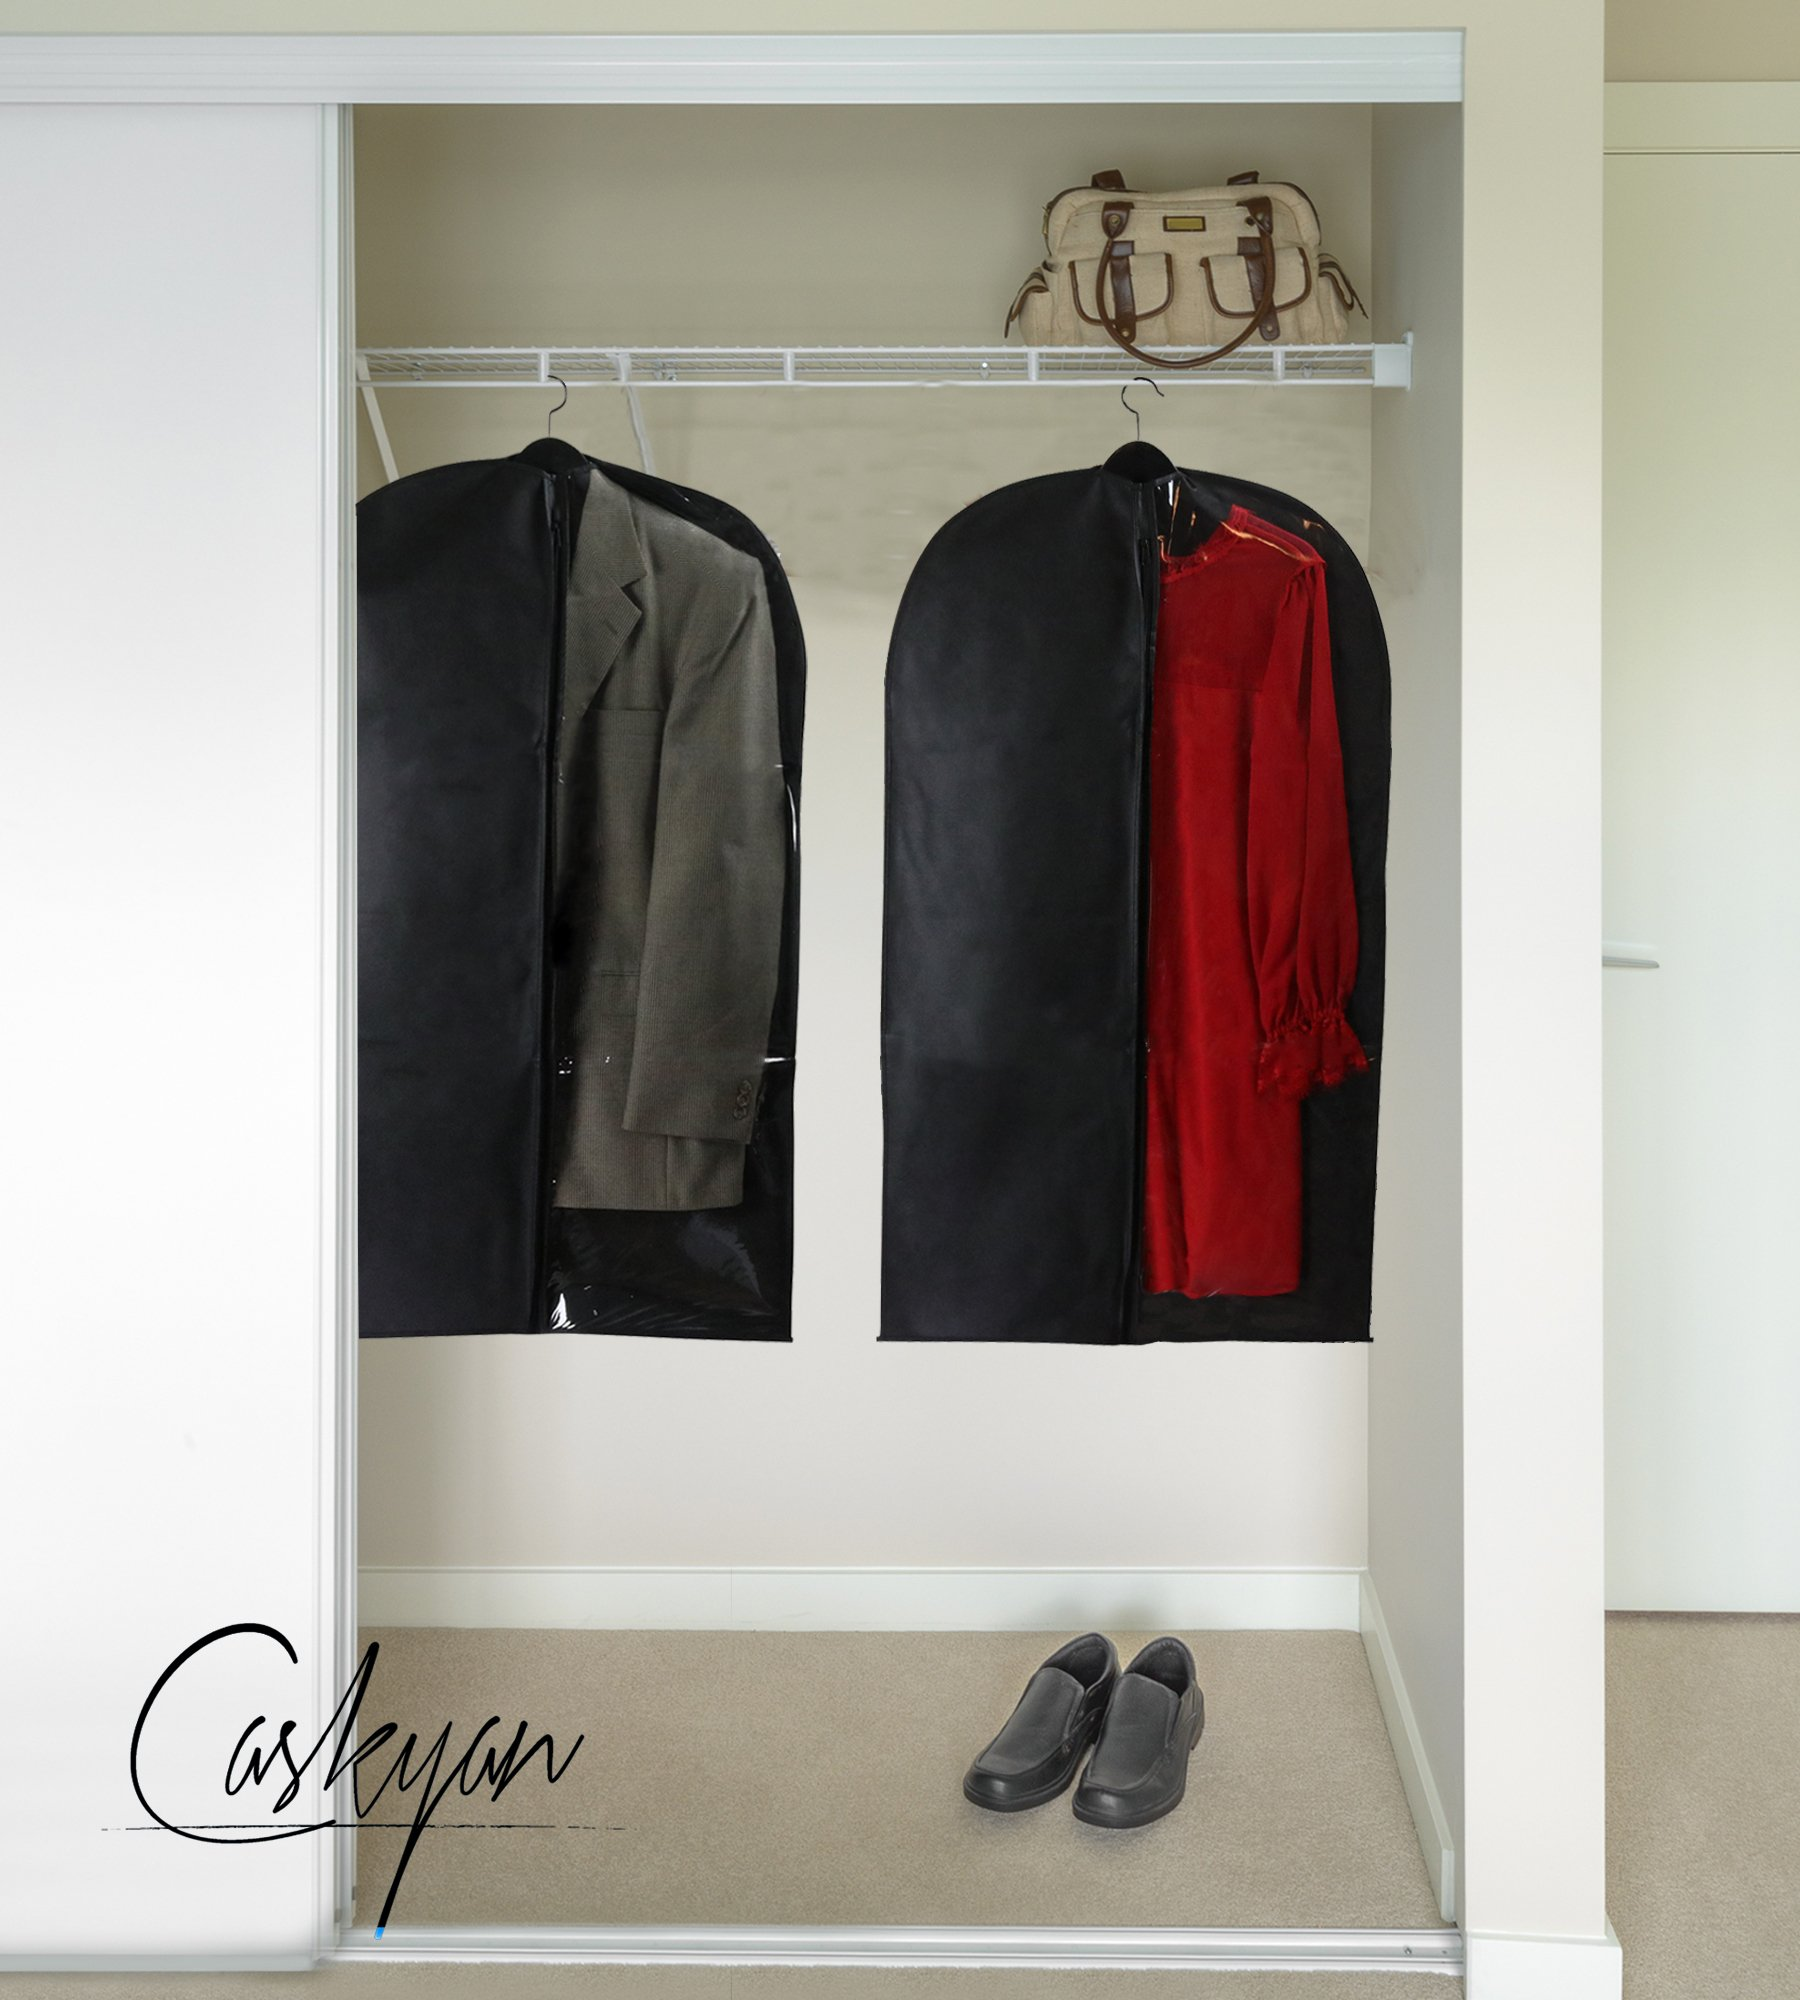 Caskyan 42'' Garment Bags, Breathable Black Non-Woven Fabric + Clear PVC for Dresses, Coats, Suits, Storage or Travel- 2 Pcs by CASKYAN (Image #5)